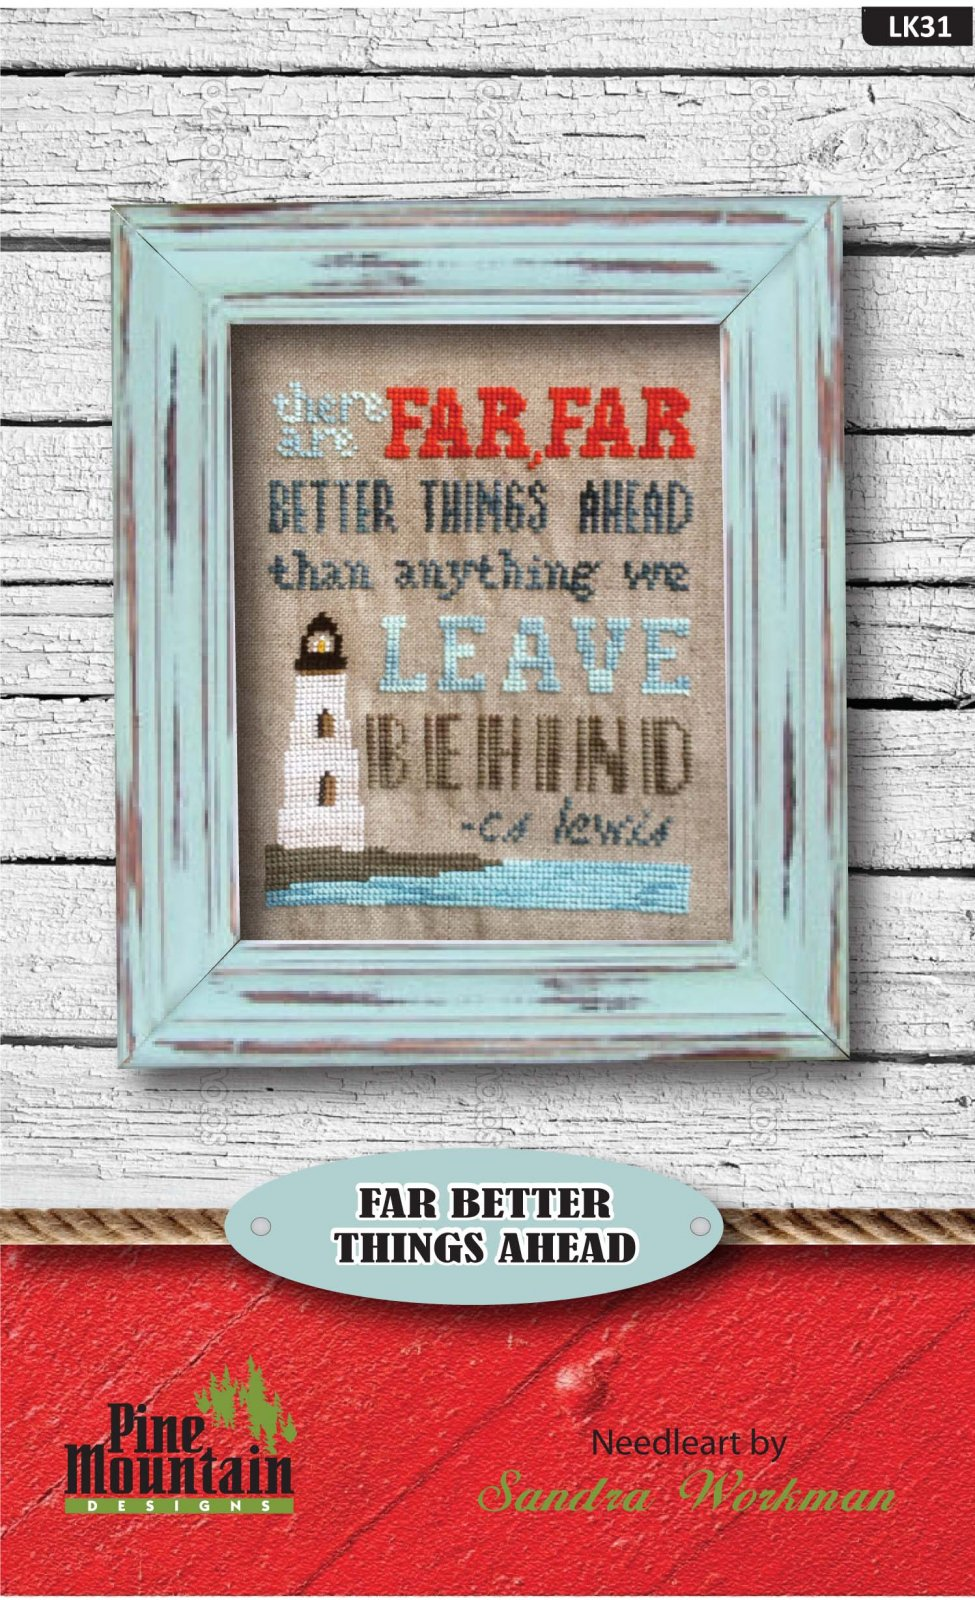 Far Far Better Things - Words of Wisdom LINEN KIT LK31